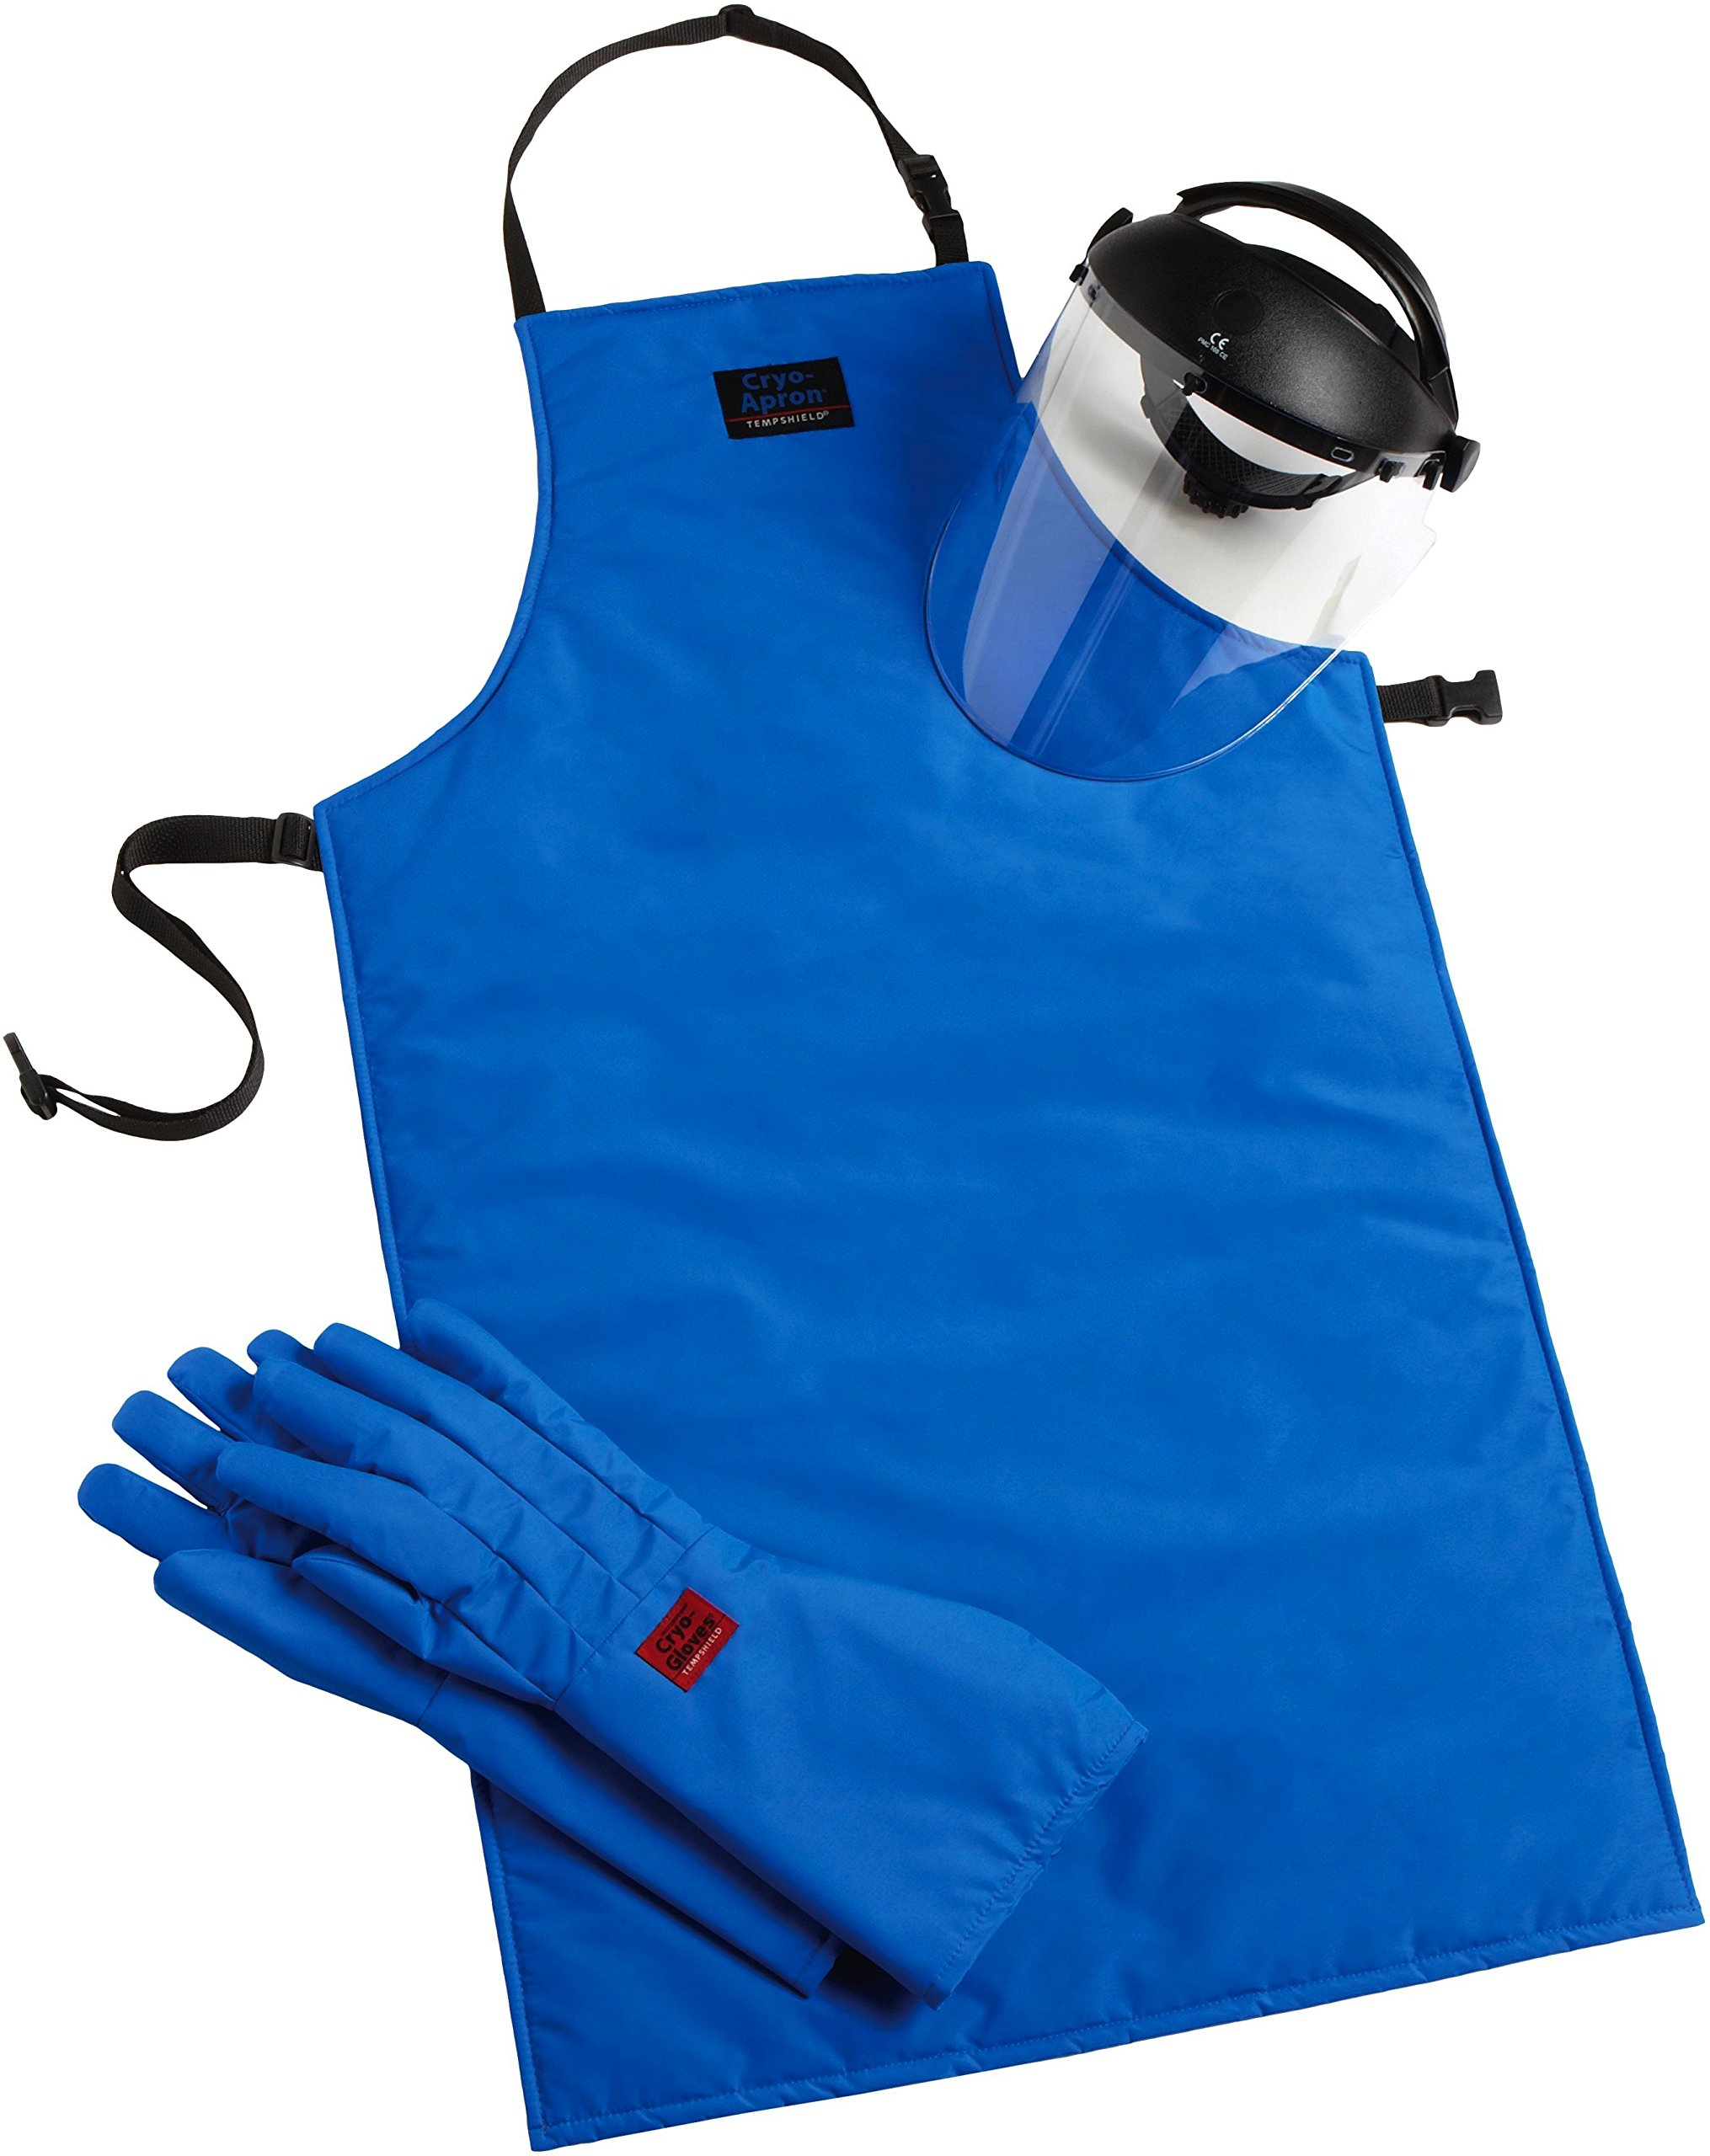 Cryo-Protection Safety Kit: Waterproof Elbow Cryo-Gloves, 48'' Cryo-Apron, Cryo-Protection Face Shield (Large)